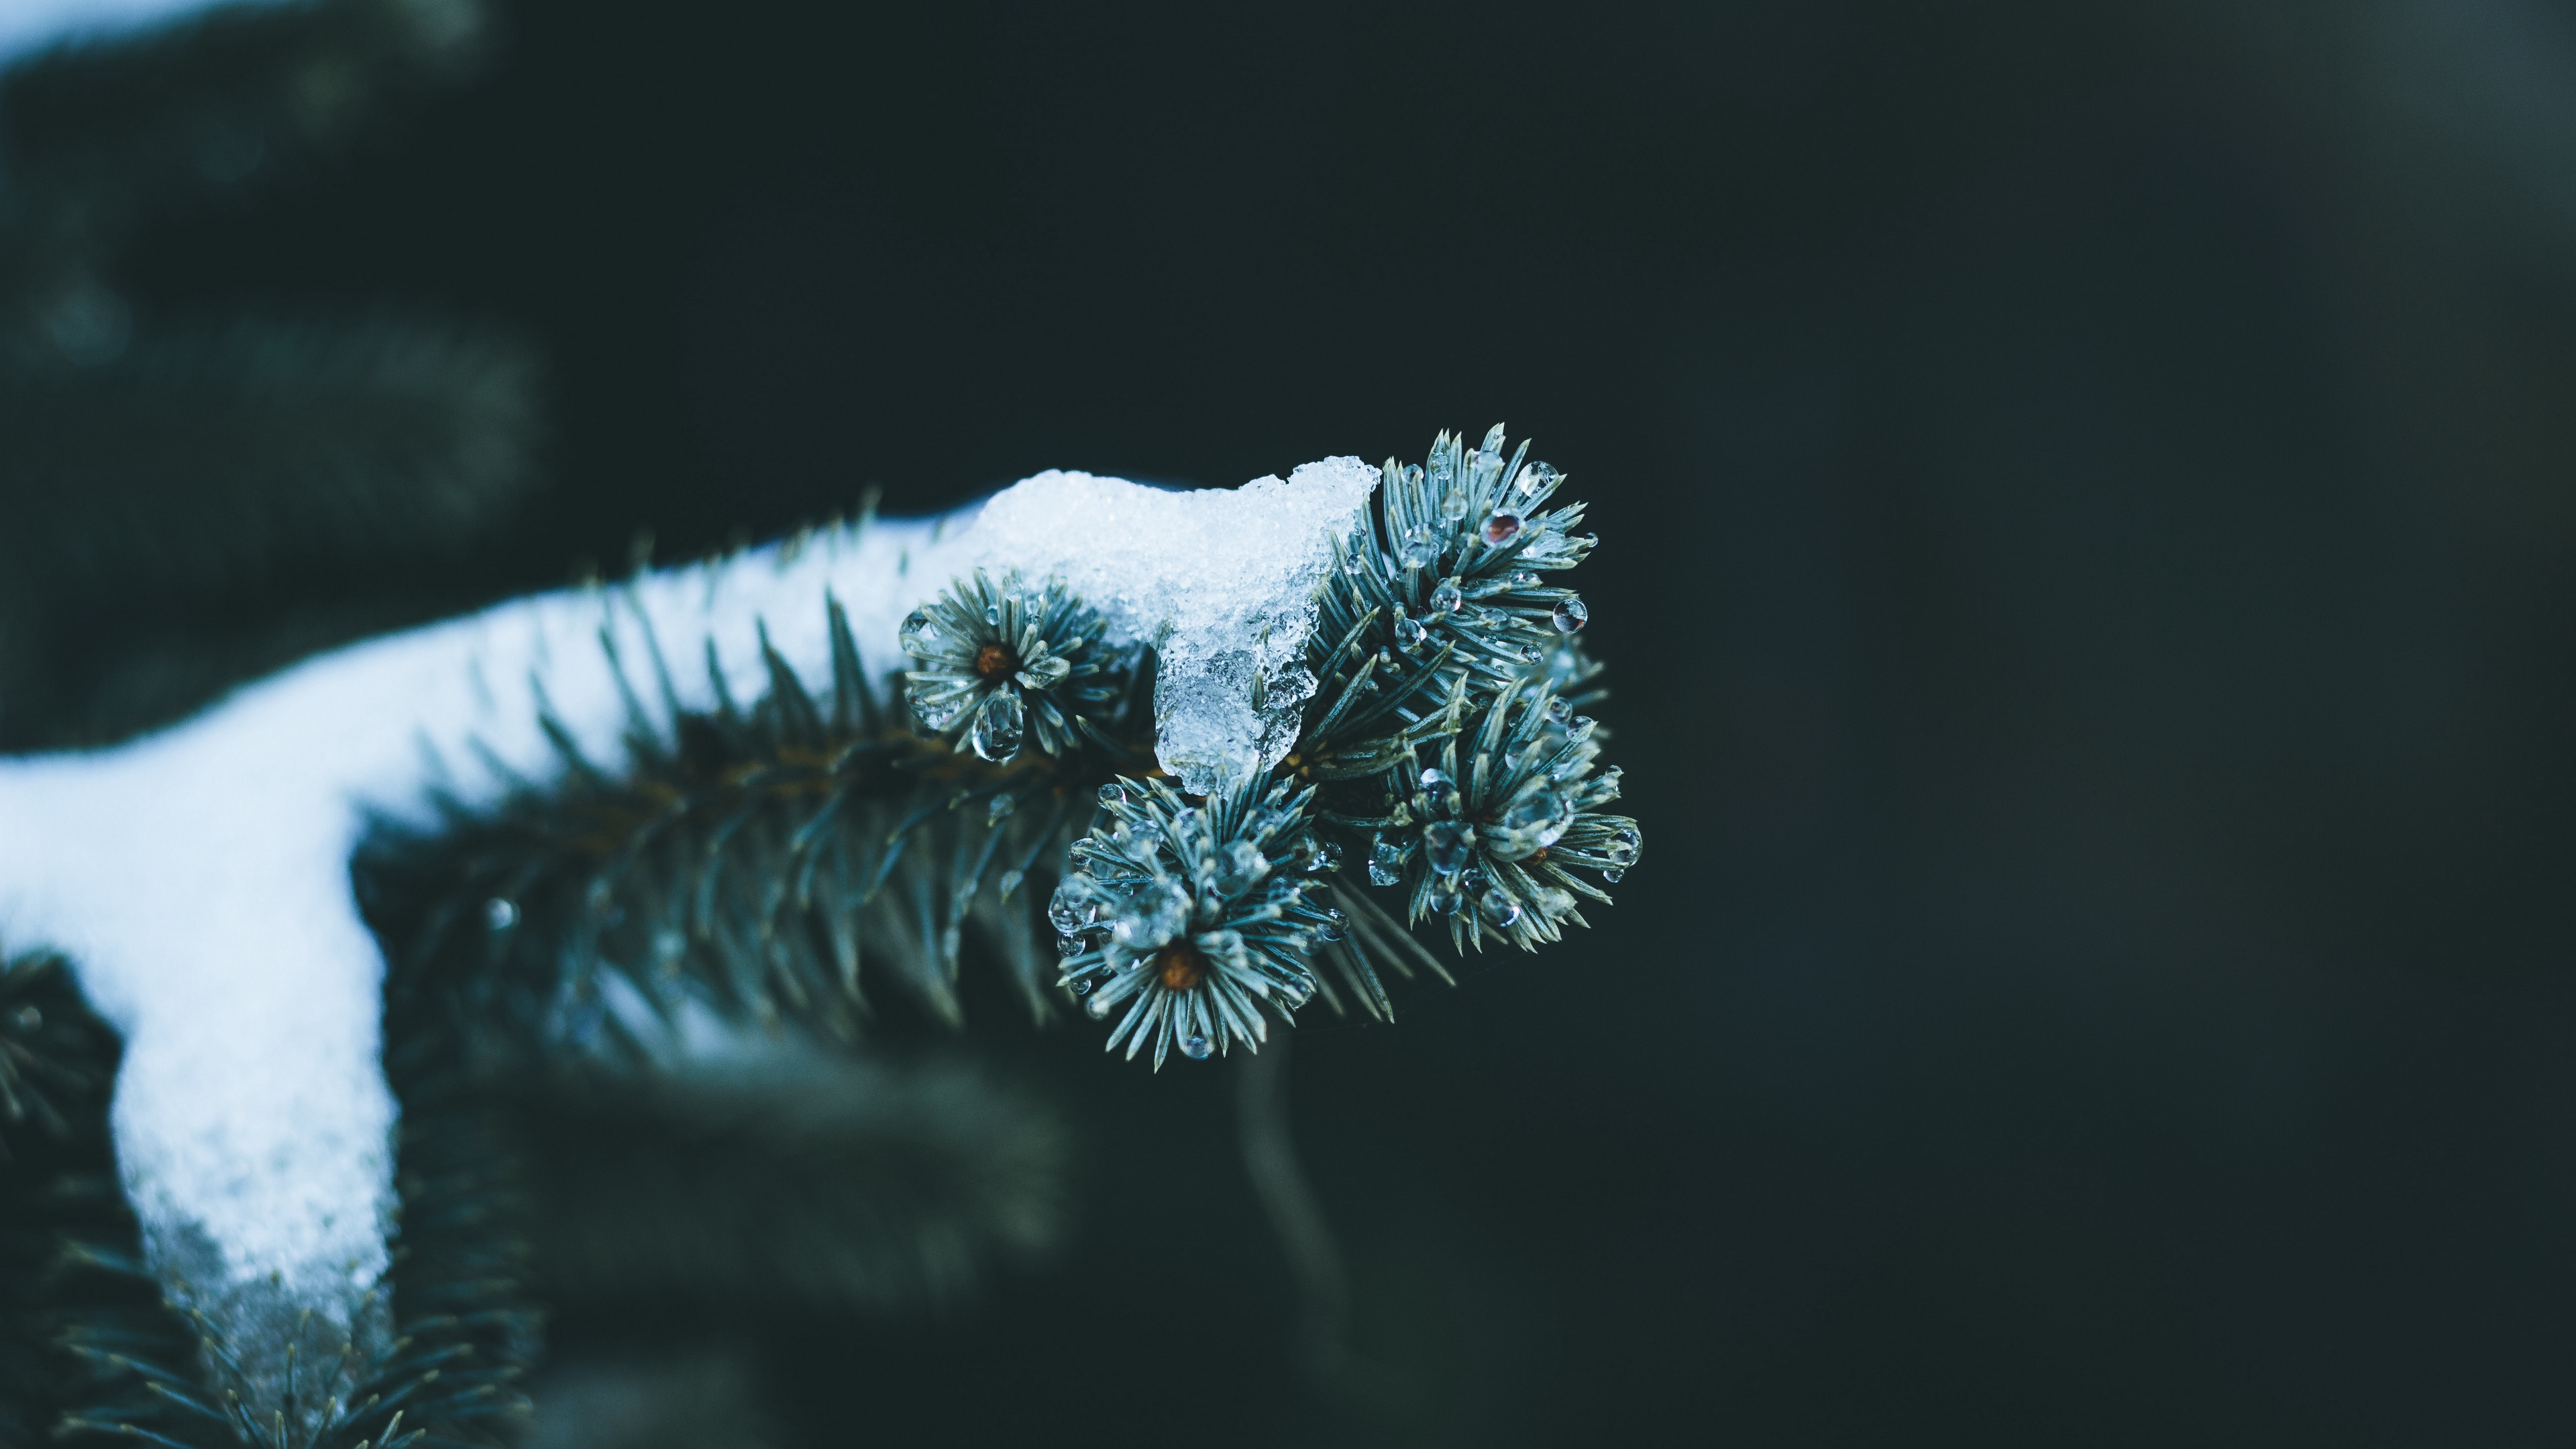 Download wallpapers 3840x2160 branch, spruce, snow, winter